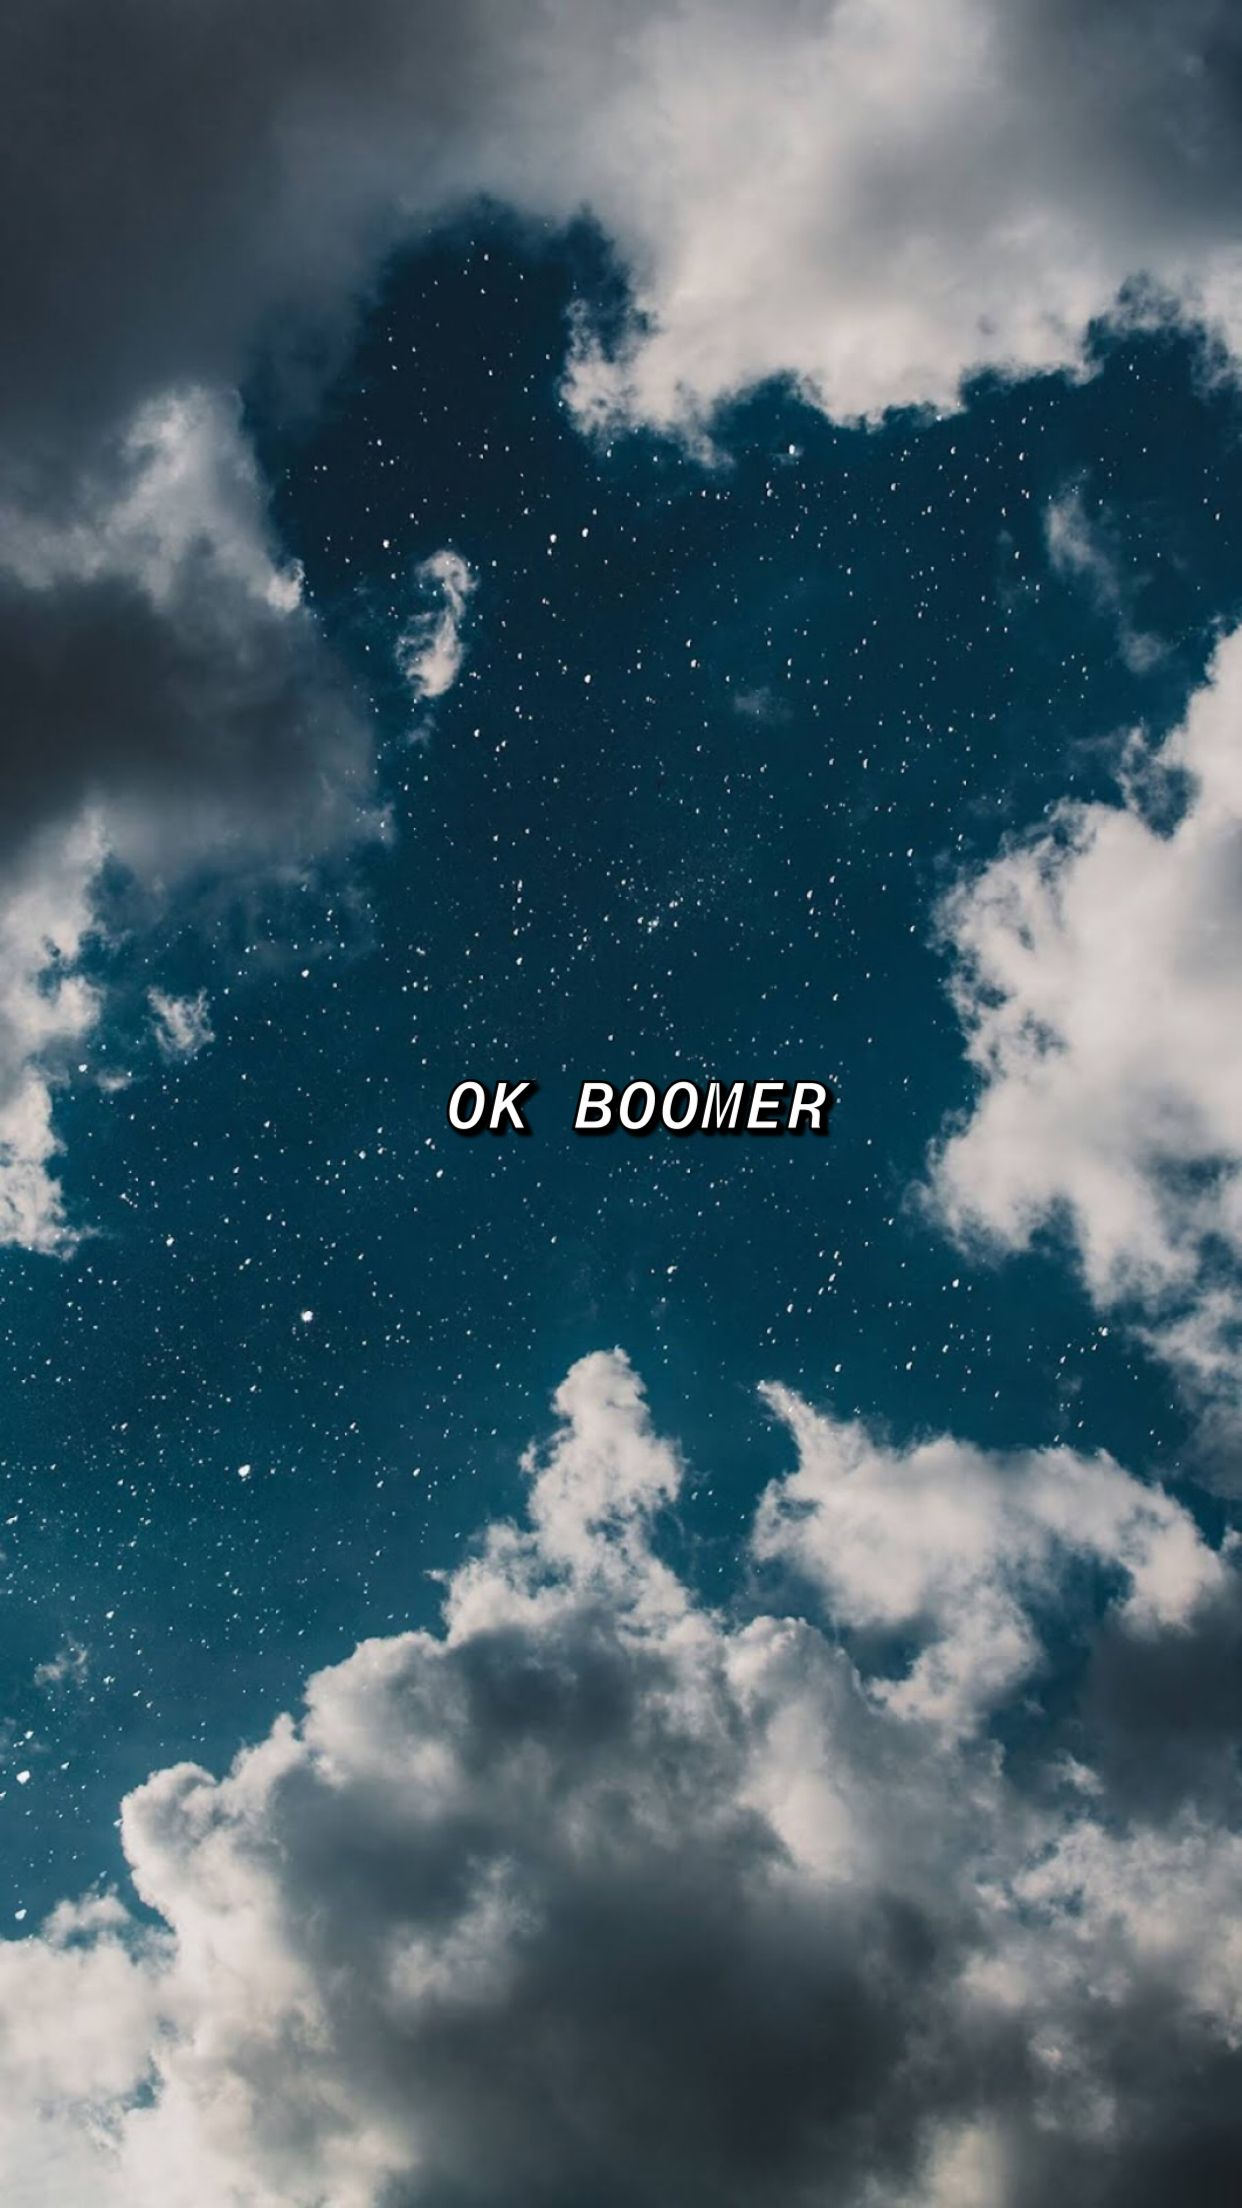 OK BOOMER Aesthetic iphone wallpaper, Cute tumblr